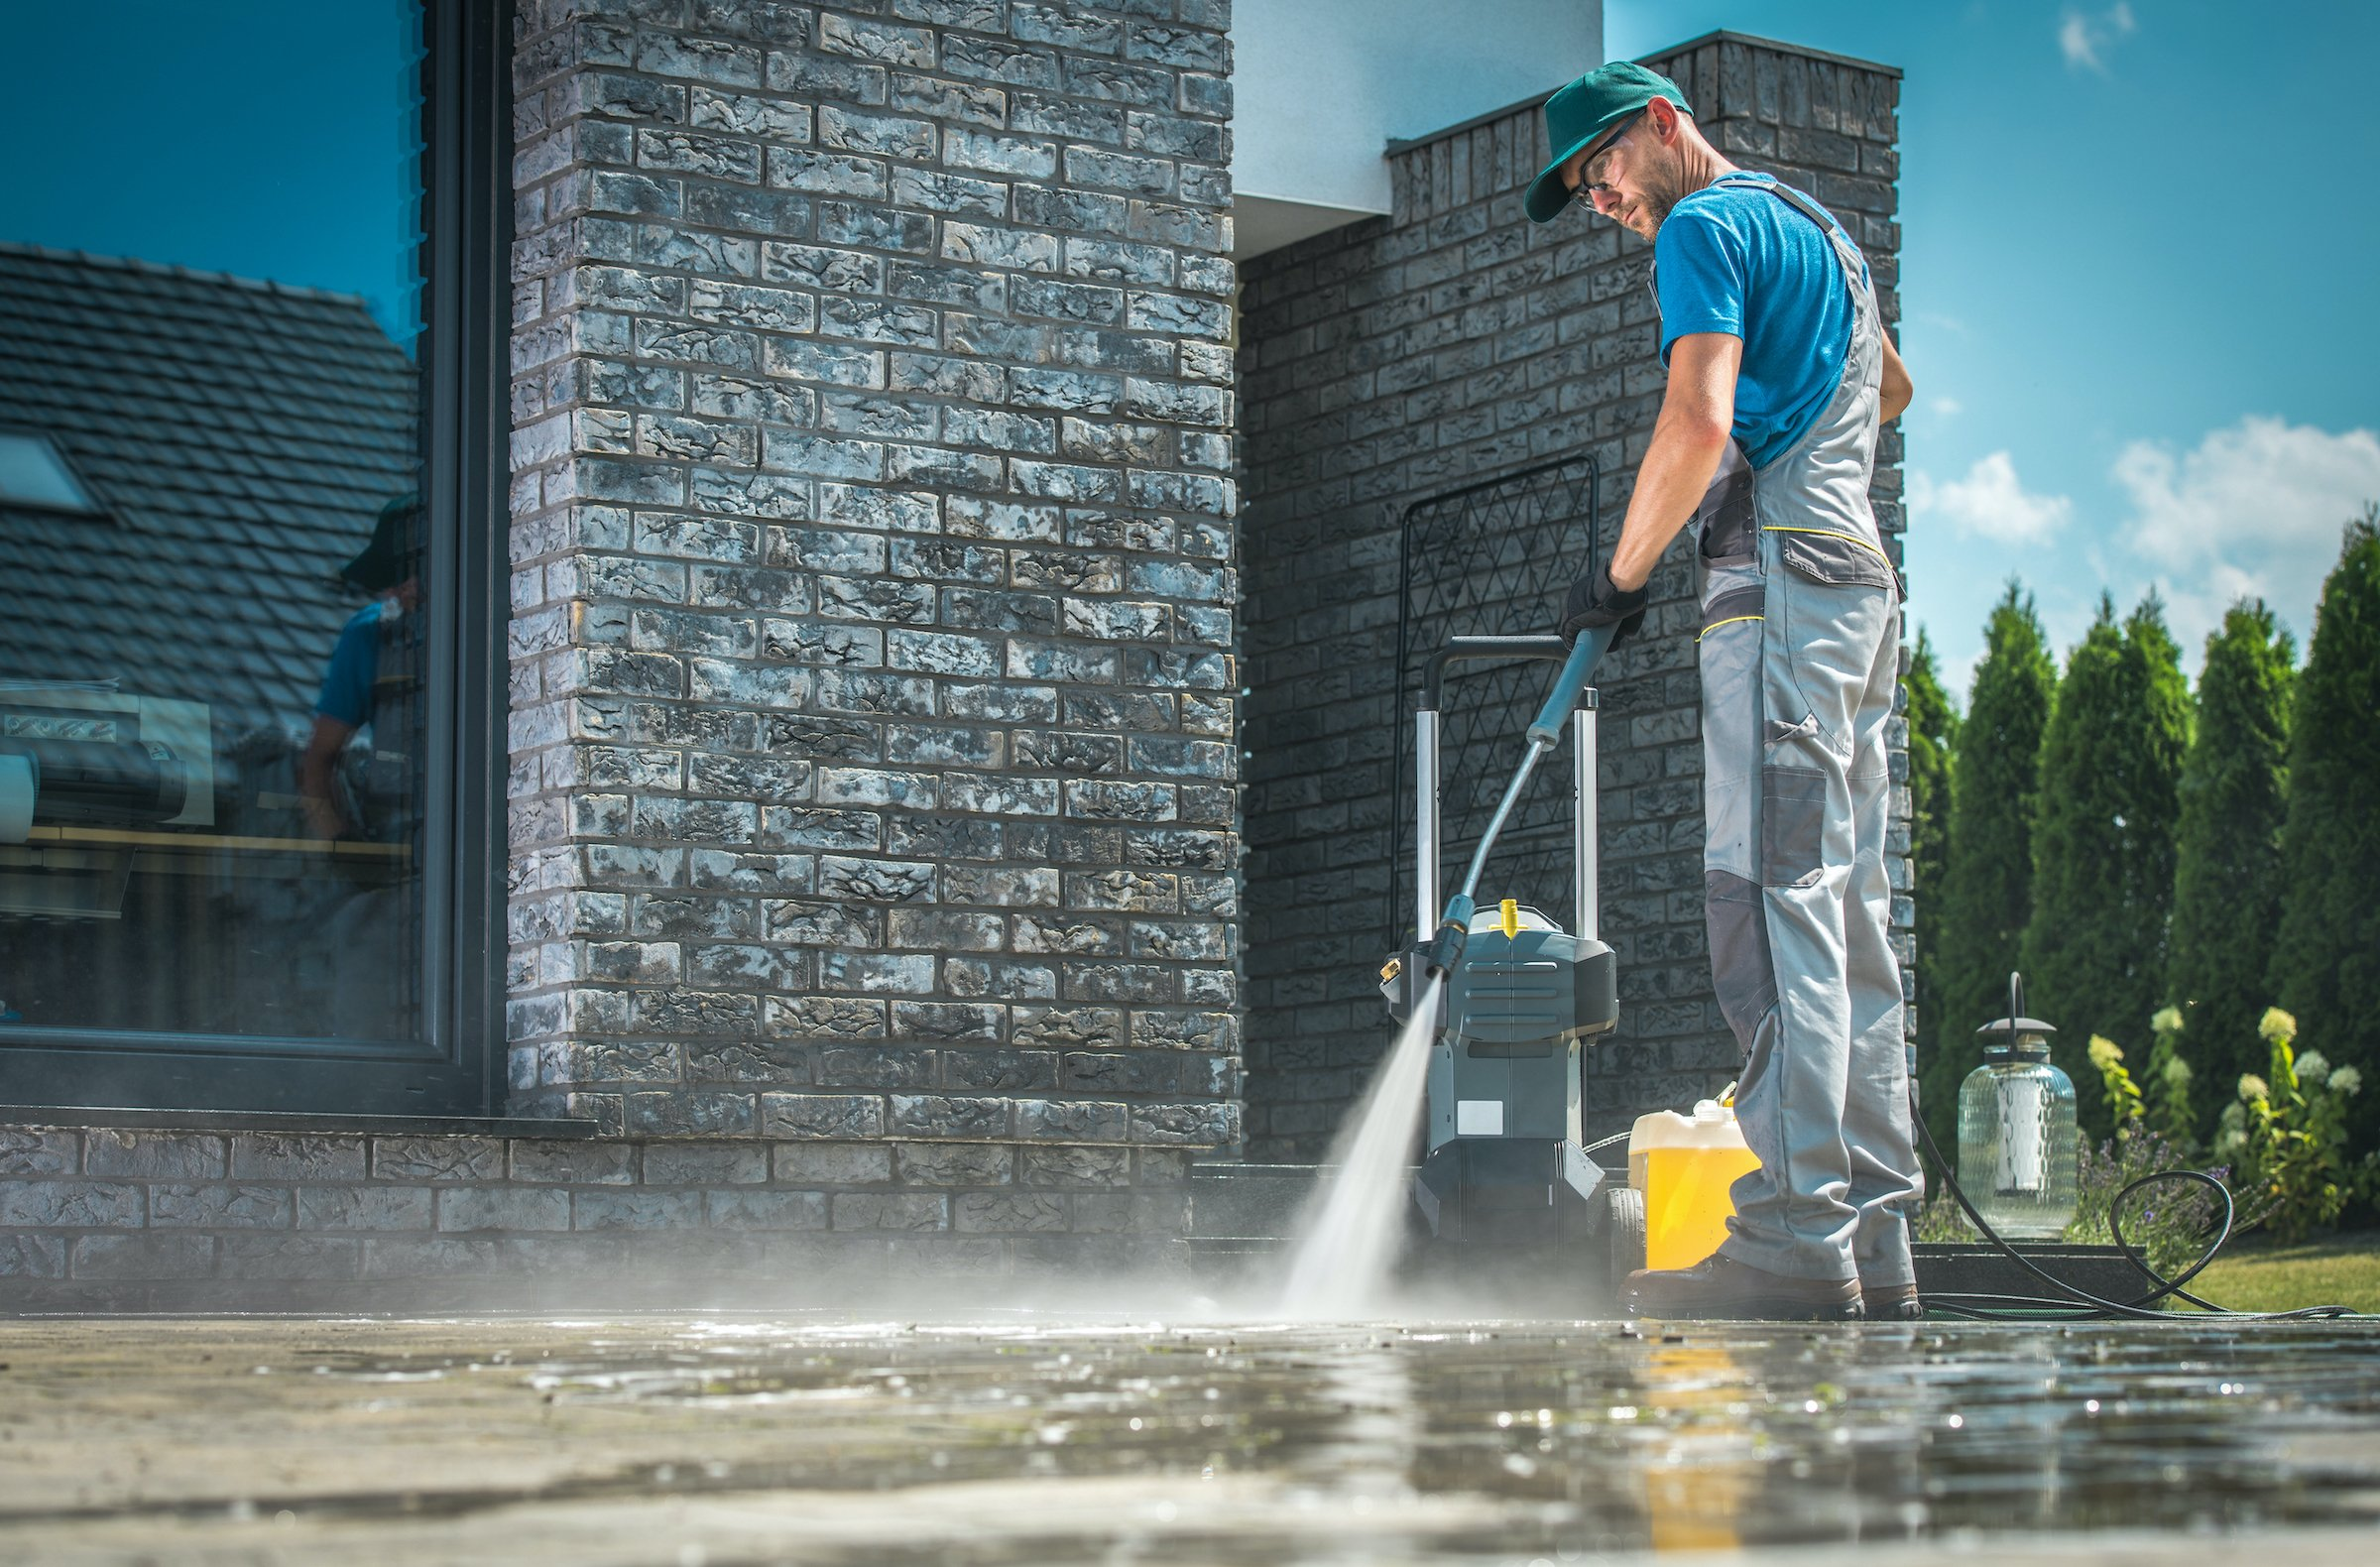 What are the benefits of power washing?